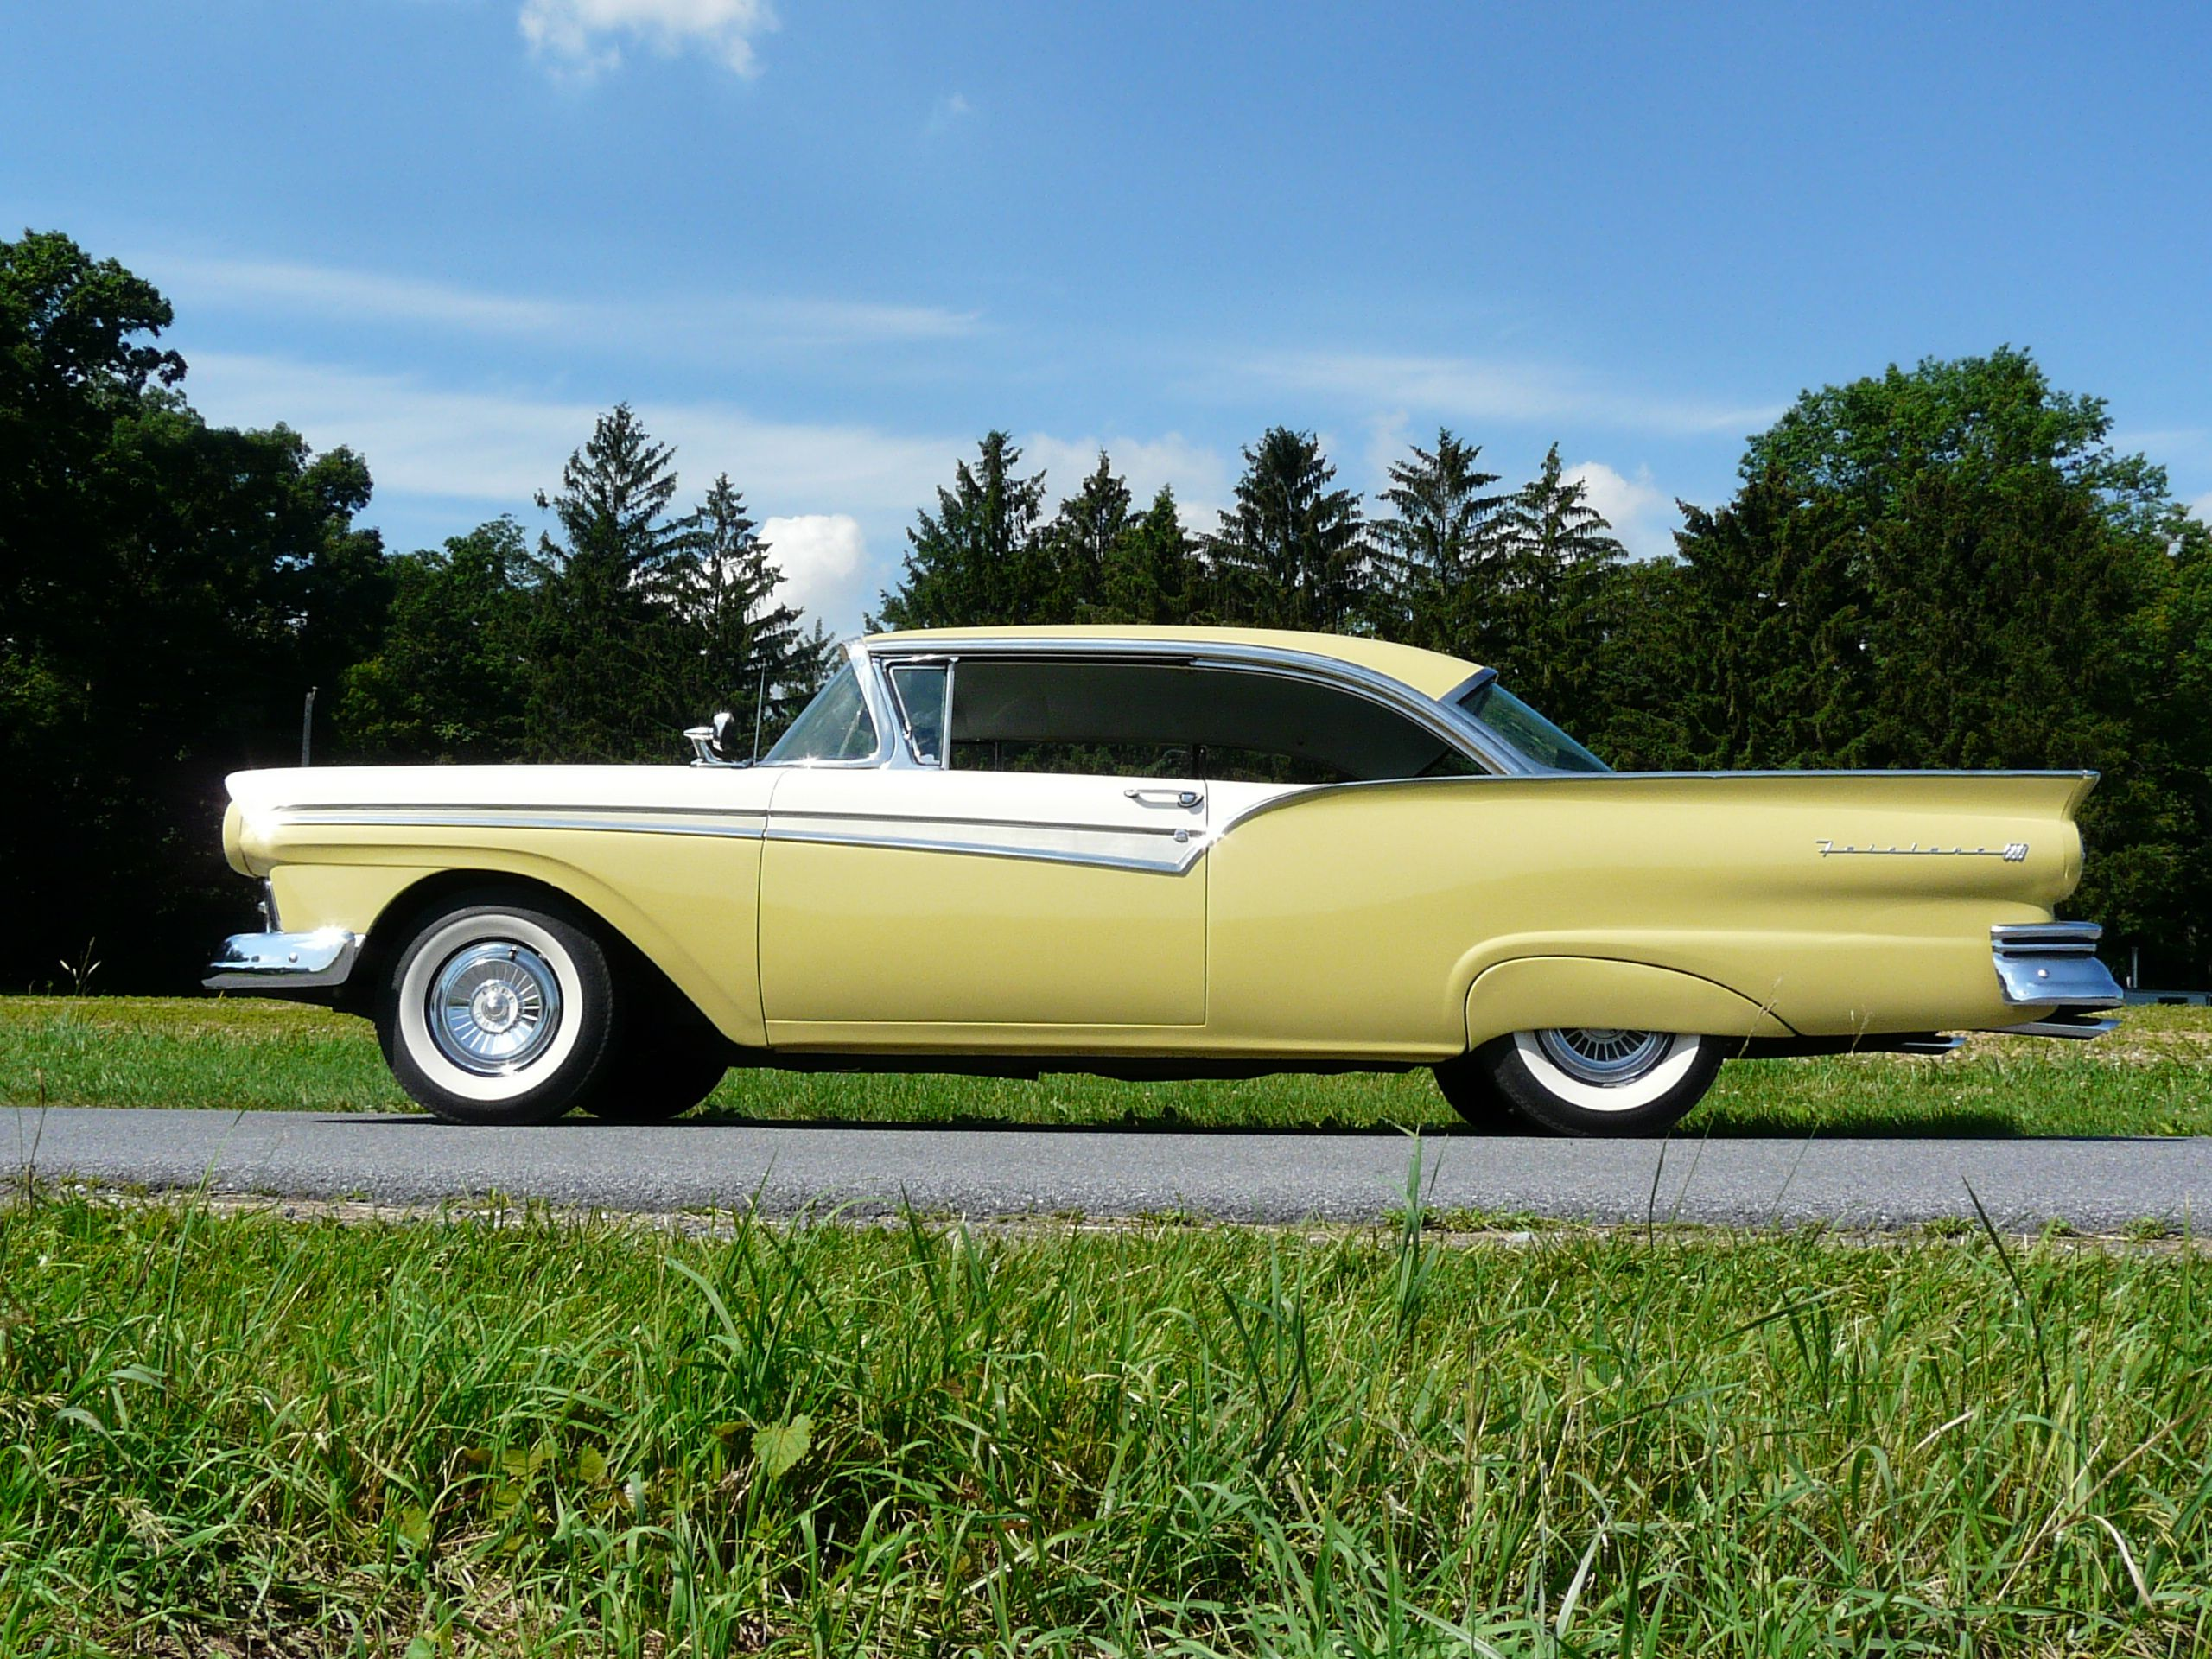 1957 ford fairlane 500 two door hard top my dad had one just like this